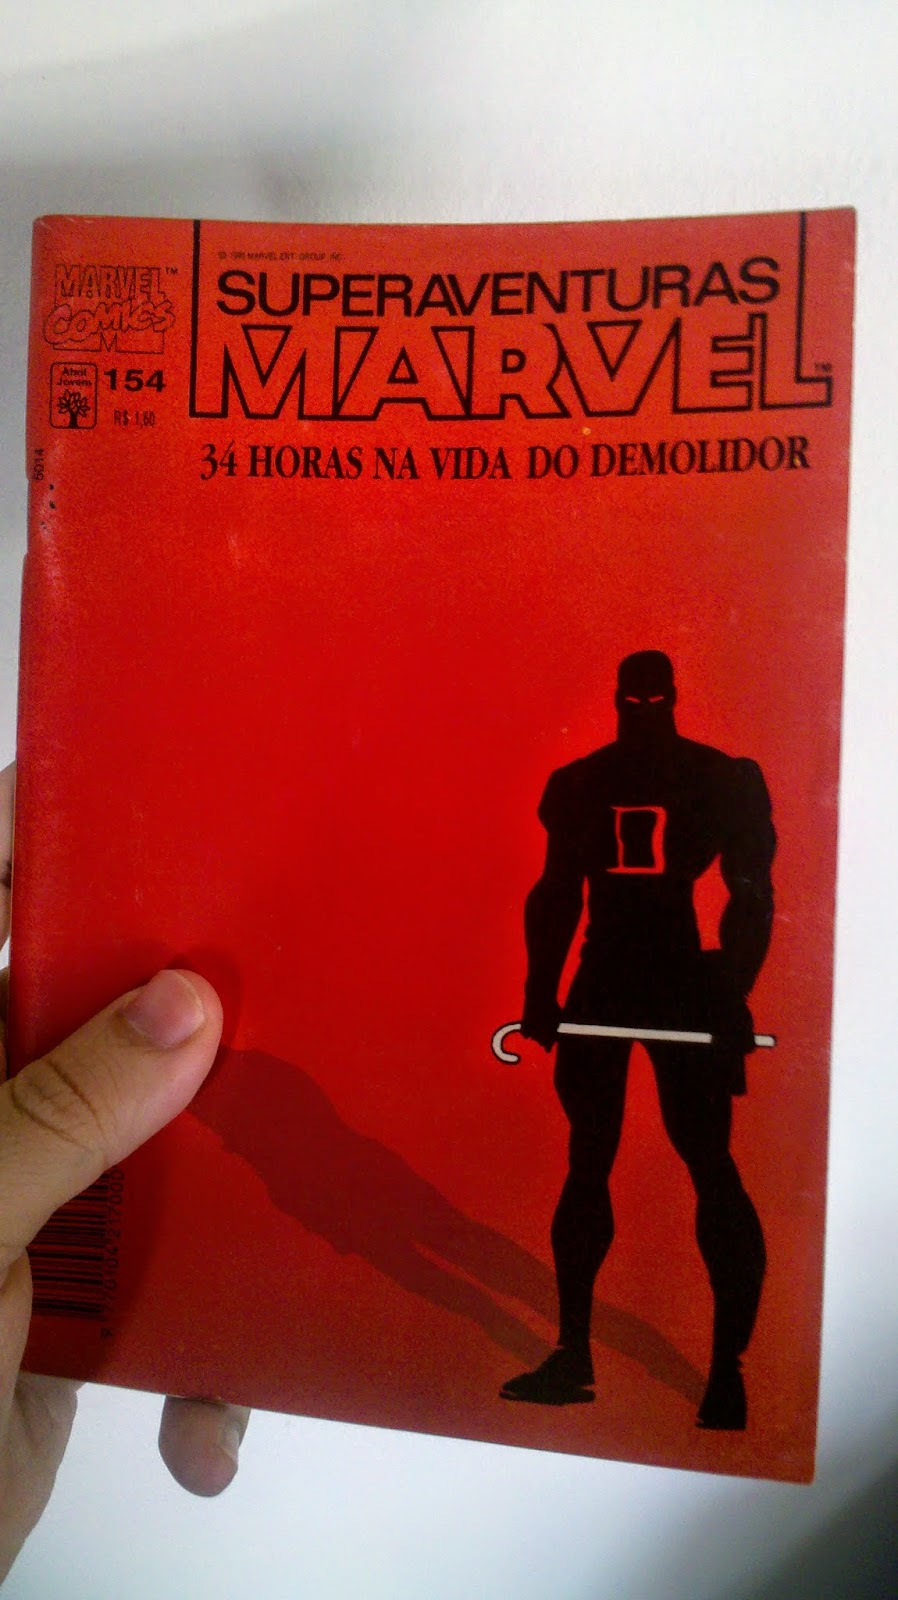 Superaventuras Marvel n° 154 - Demolidor